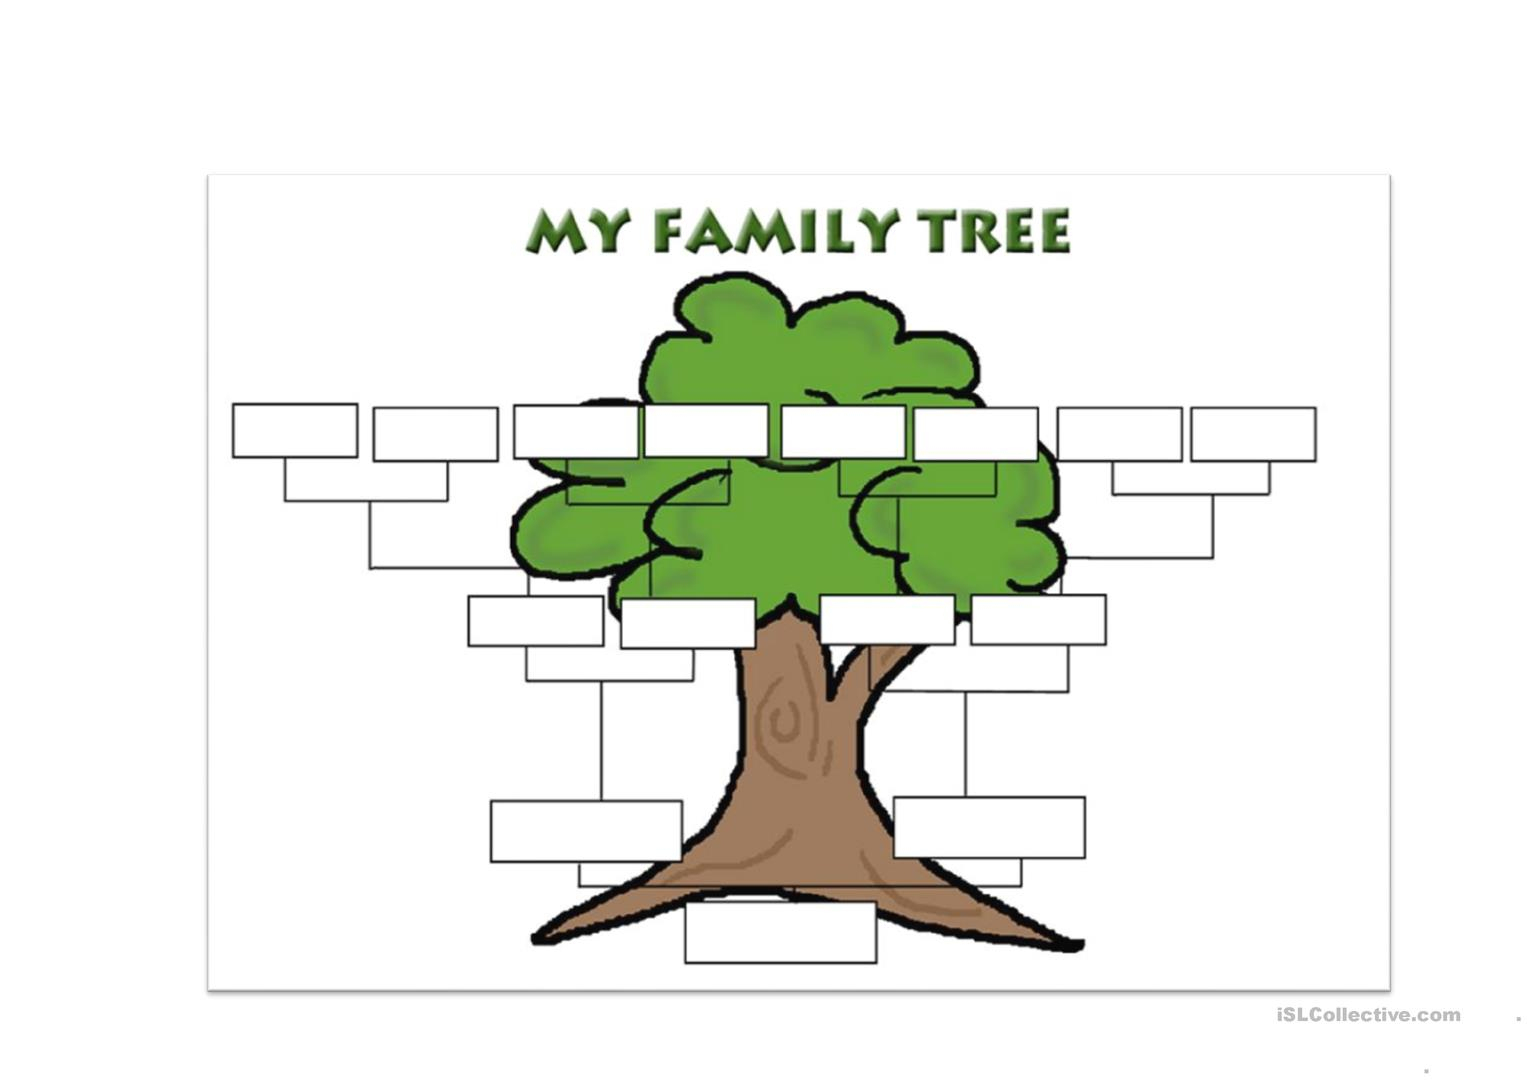 Family Tree Template Worksheet - Free Esl Printable Worksheets Made - My Family Tree Free Printable Worksheets